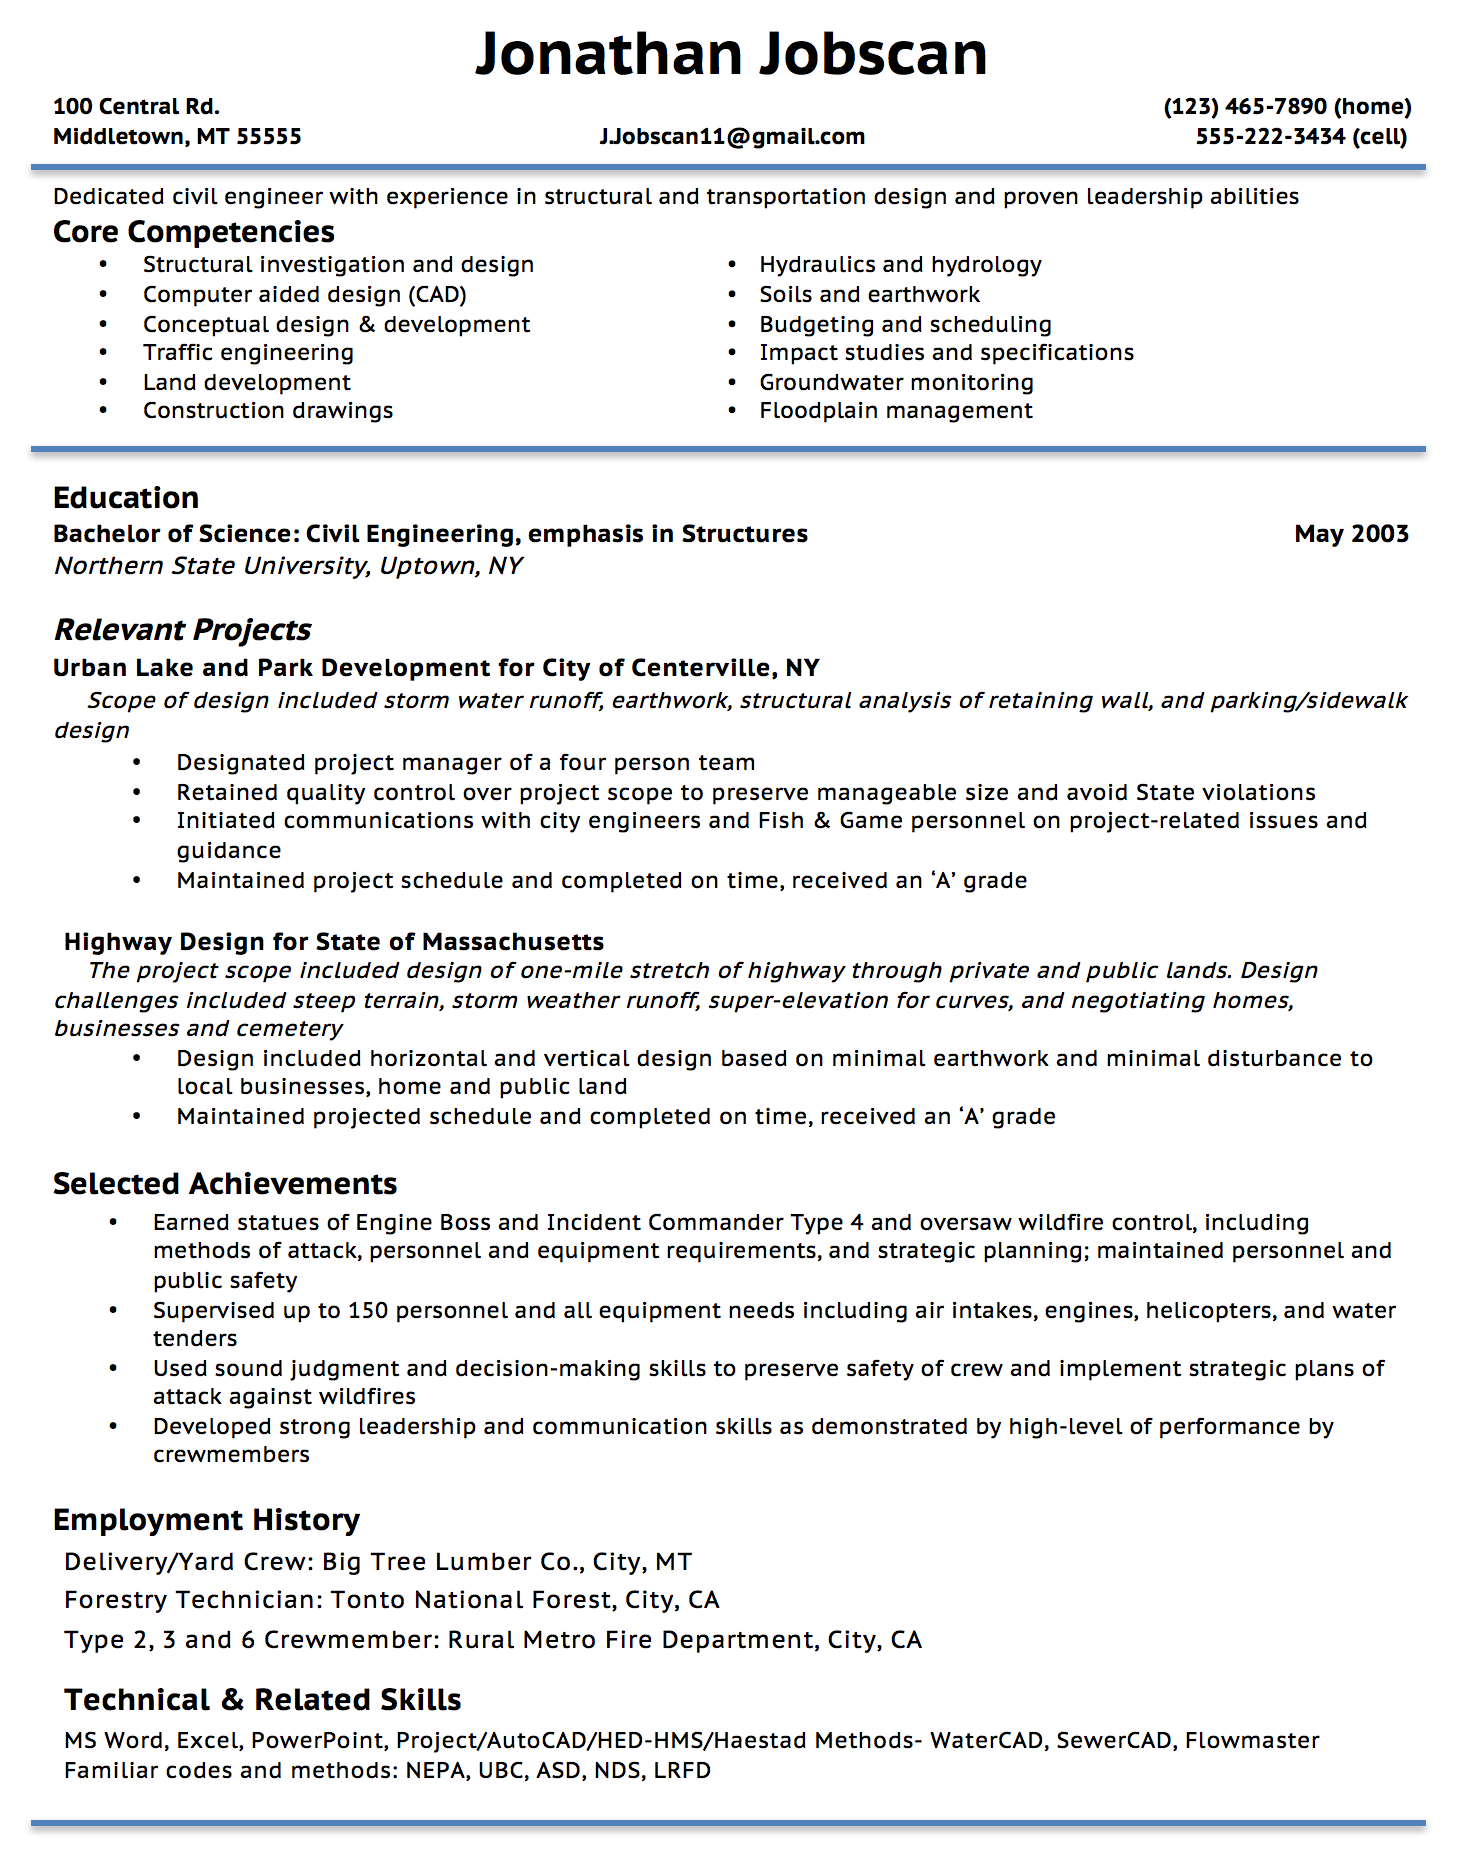 Opposenewapstandardsus  Pleasant Resume Writing Guide  Jobscan With Outstanding Example Of A Functional Resume Format With Enchanting Purchasing Manager Resume Also Updating Resume In Addition Great Resumes Fast And Resume Professional As Well As Best Font To Use On Resume Additionally Kitchen Manager Resume From Jobscanco With Opposenewapstandardsus  Outstanding Resume Writing Guide  Jobscan With Enchanting Example Of A Functional Resume Format And Pleasant Purchasing Manager Resume Also Updating Resume In Addition Great Resumes Fast From Jobscanco